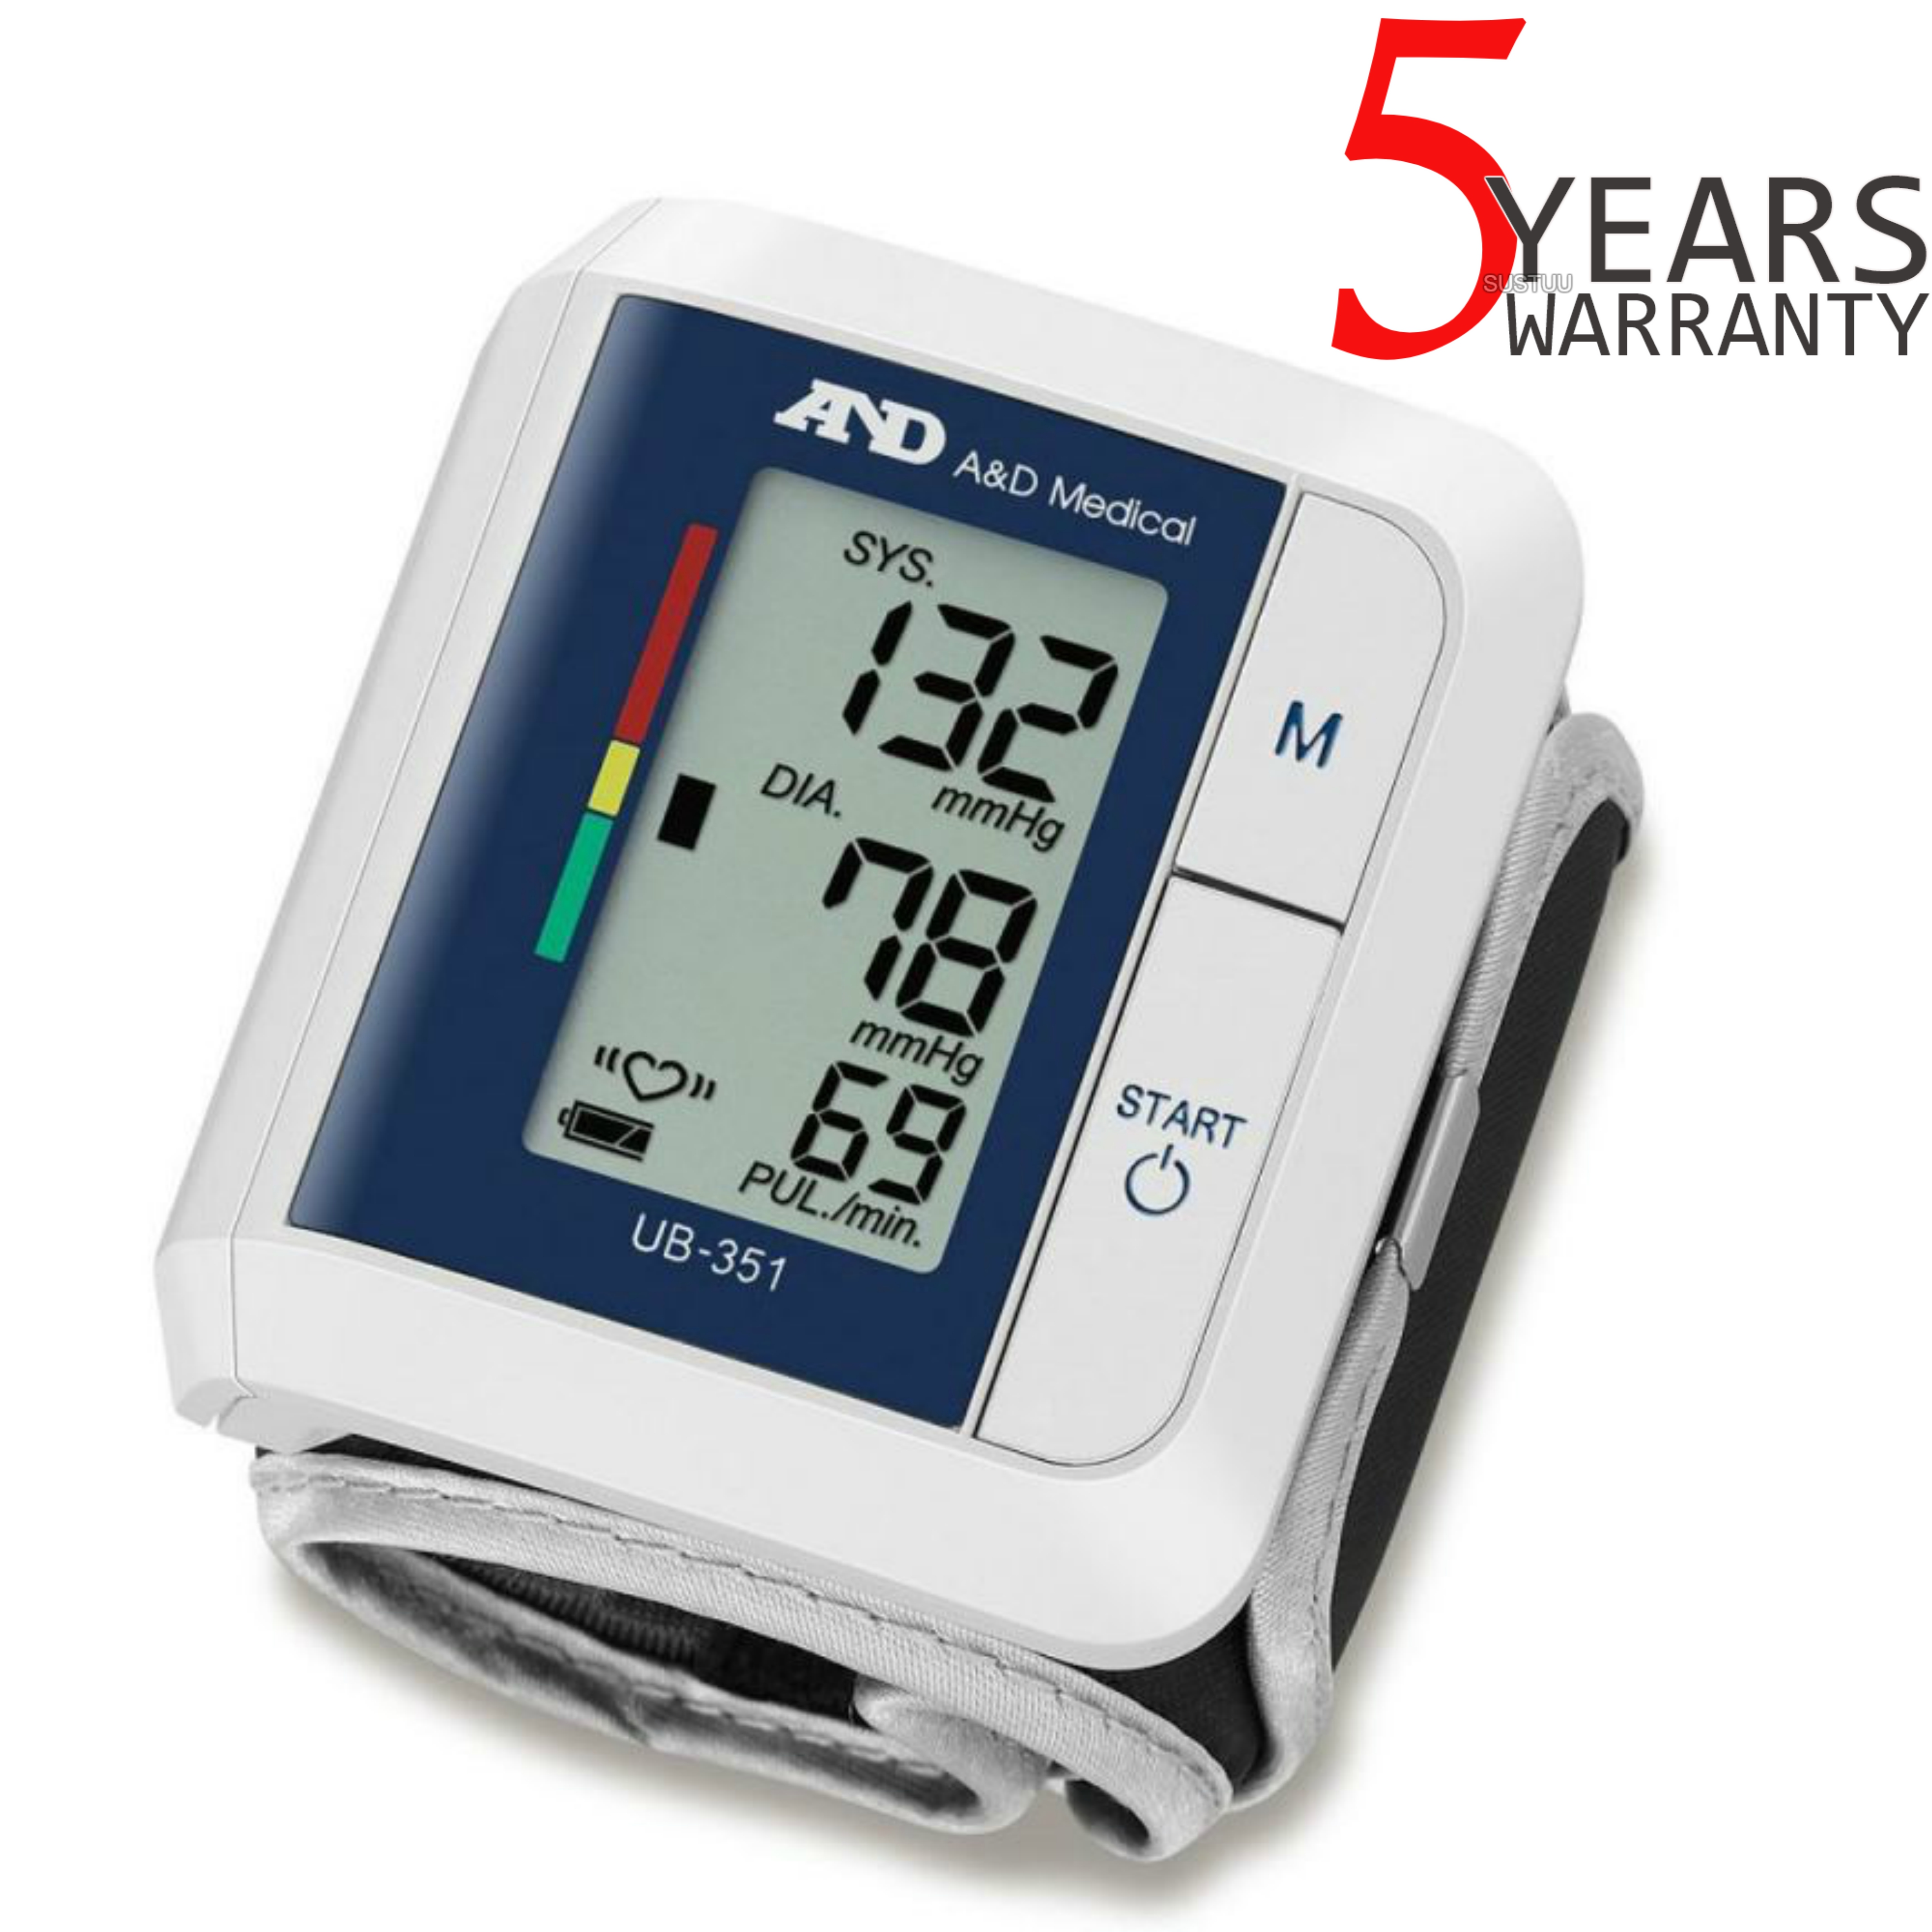 A&D Medical UB351 Wrist Blood Pressure Monitor | IHB Indicator | Compact Design | Whit